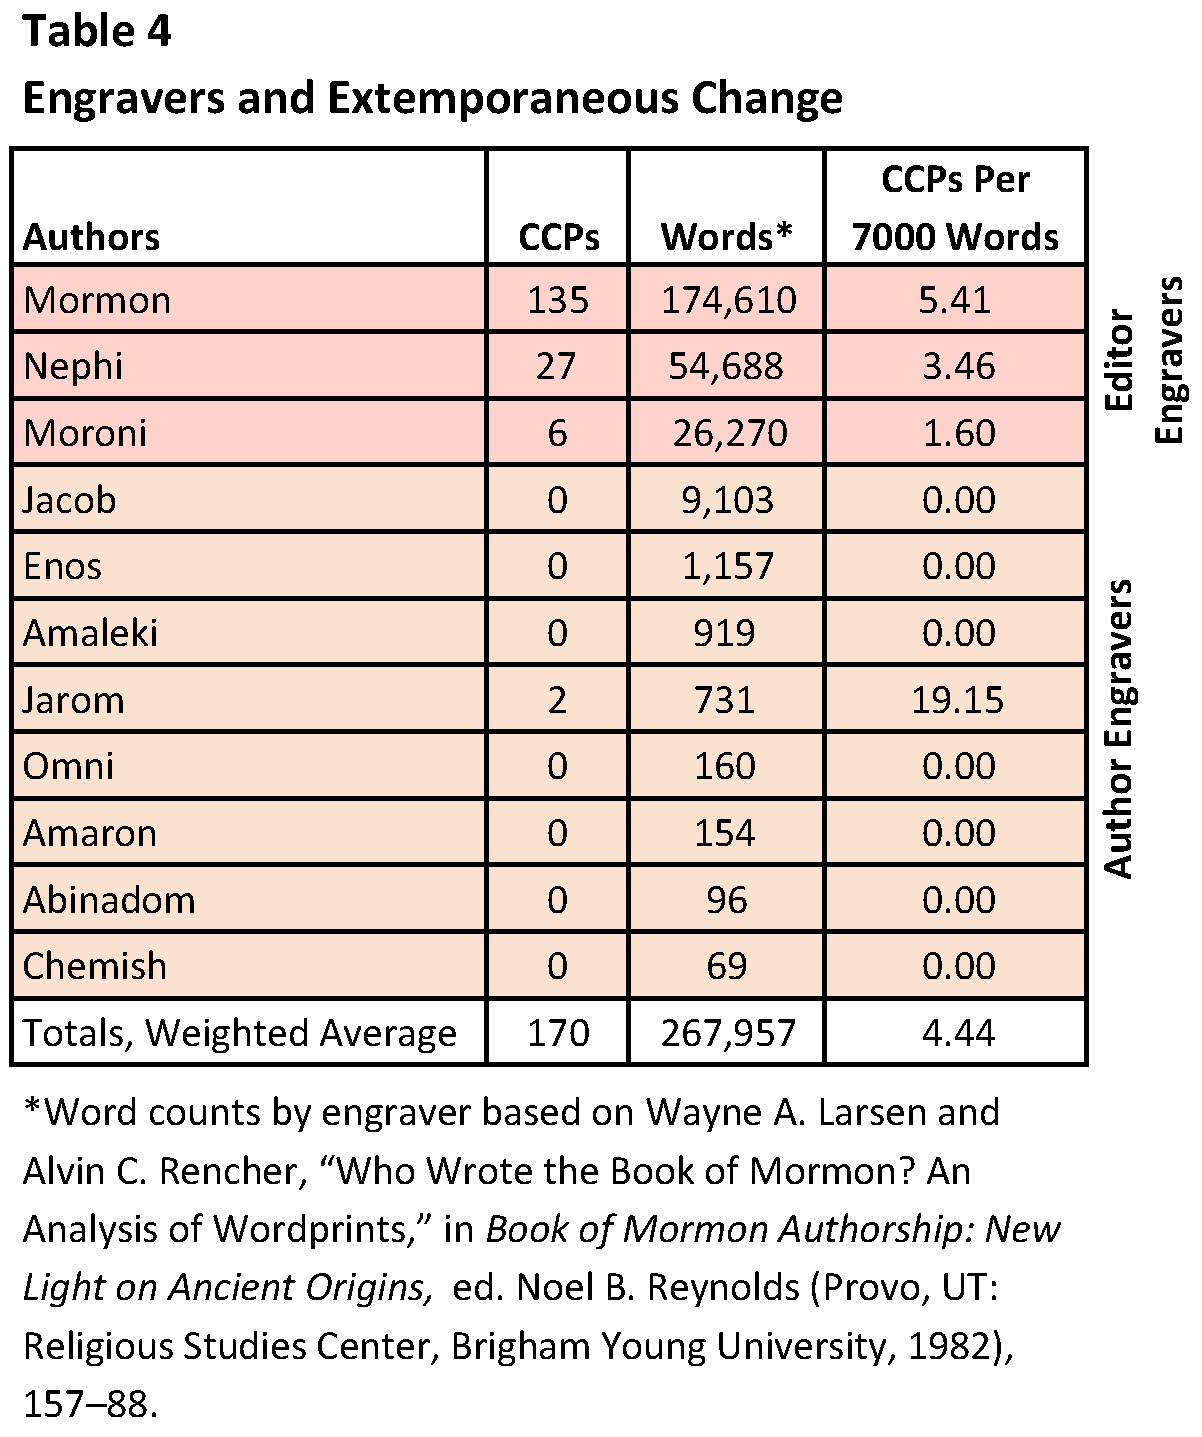 ... There Are 135 Total CCPs, Which Include The Texts Of Embedded Authors,  But In His Author Texts There Are 69. Nearly Half Of The Extemporaneous  Change ...